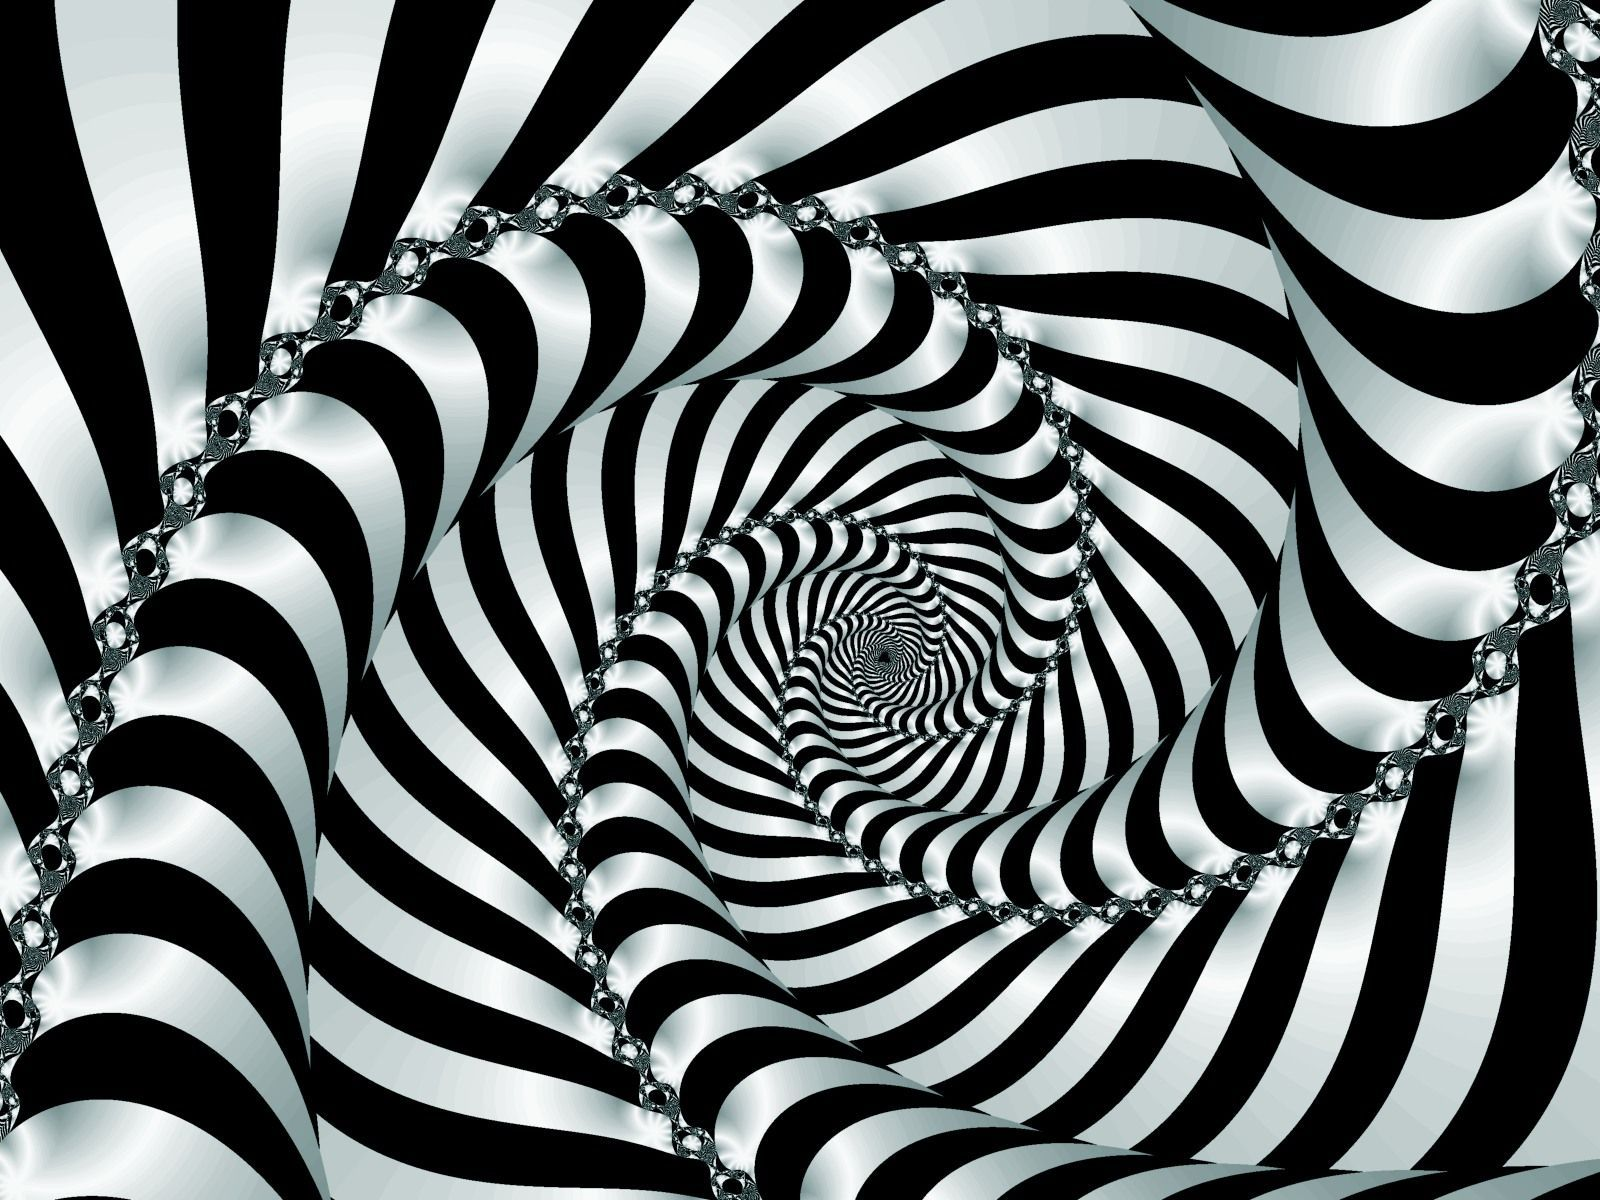 Full HD p Optical illusion Wallpapers HD, Desktop Backgrounds 1600x1200